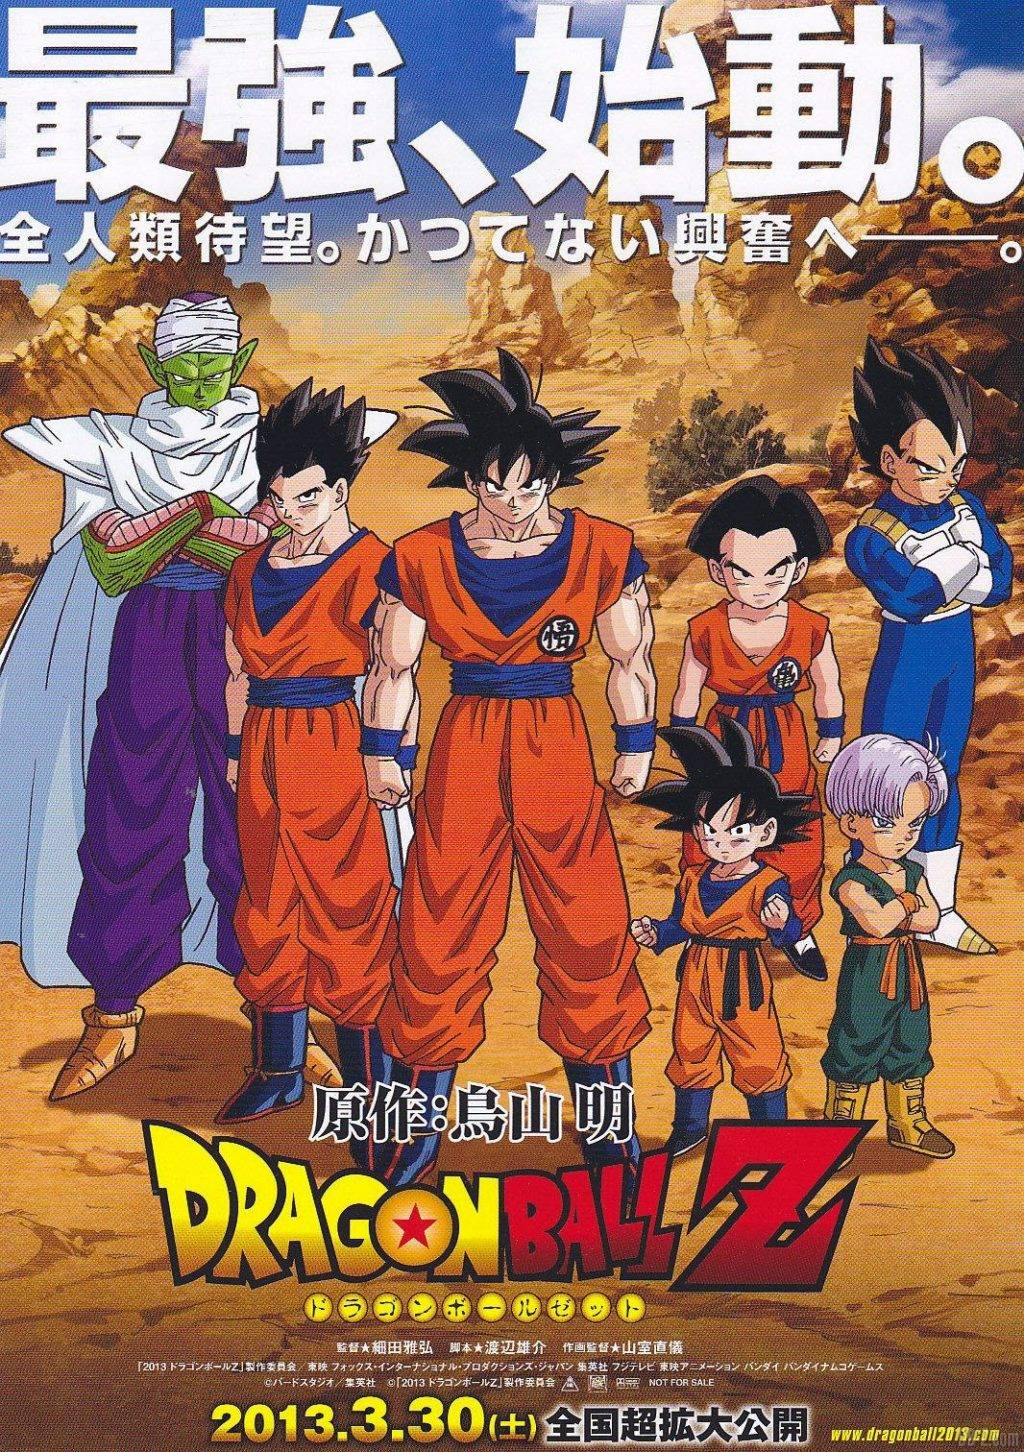 2nd Poster Film Dragon Ball Z 2013